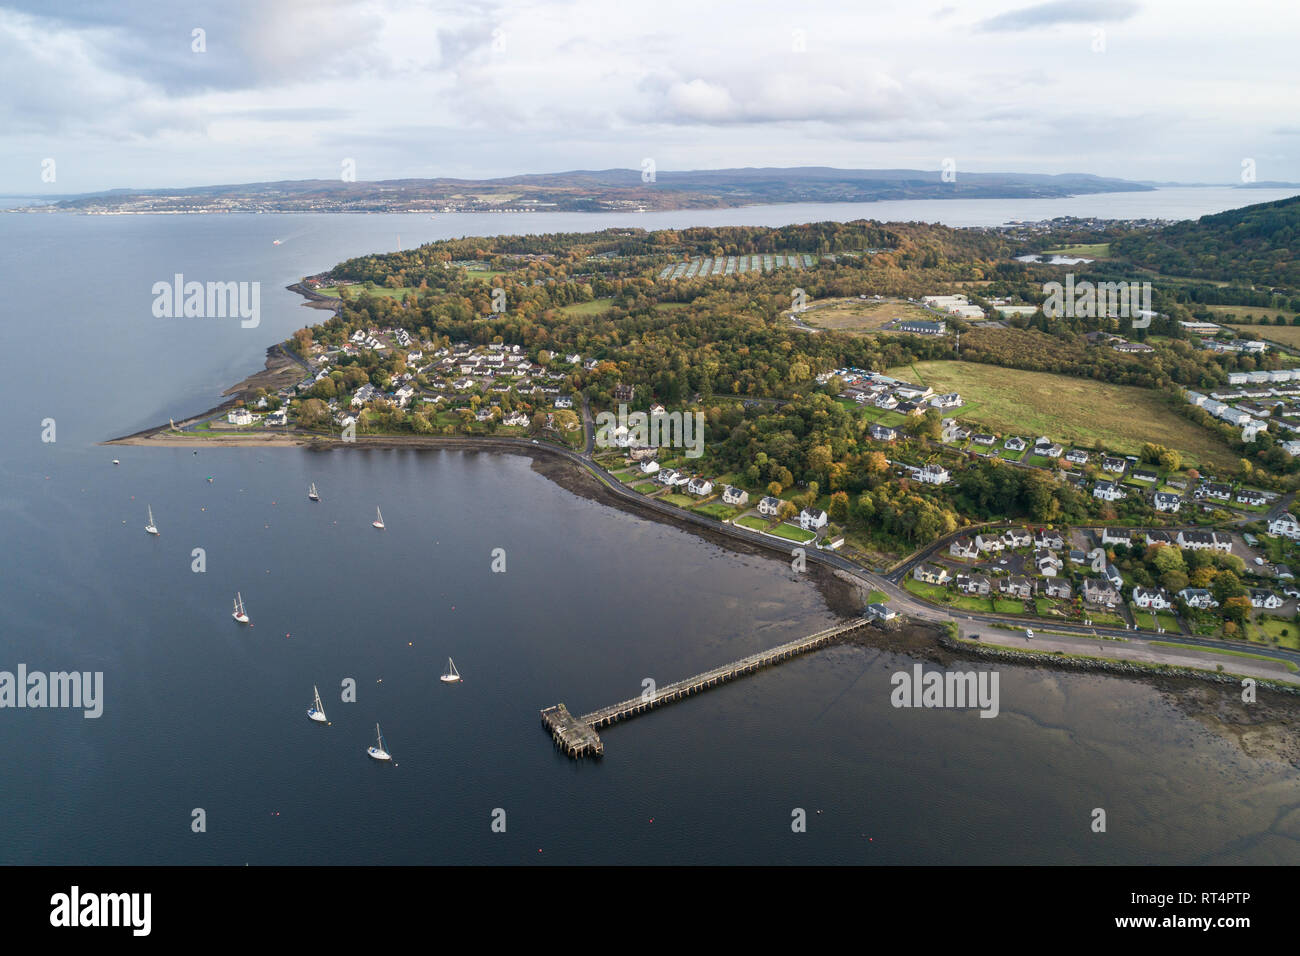 Aerial image looking south across the First of Clyde towards Gourock and Greenock from Dunoon. - Stock Image